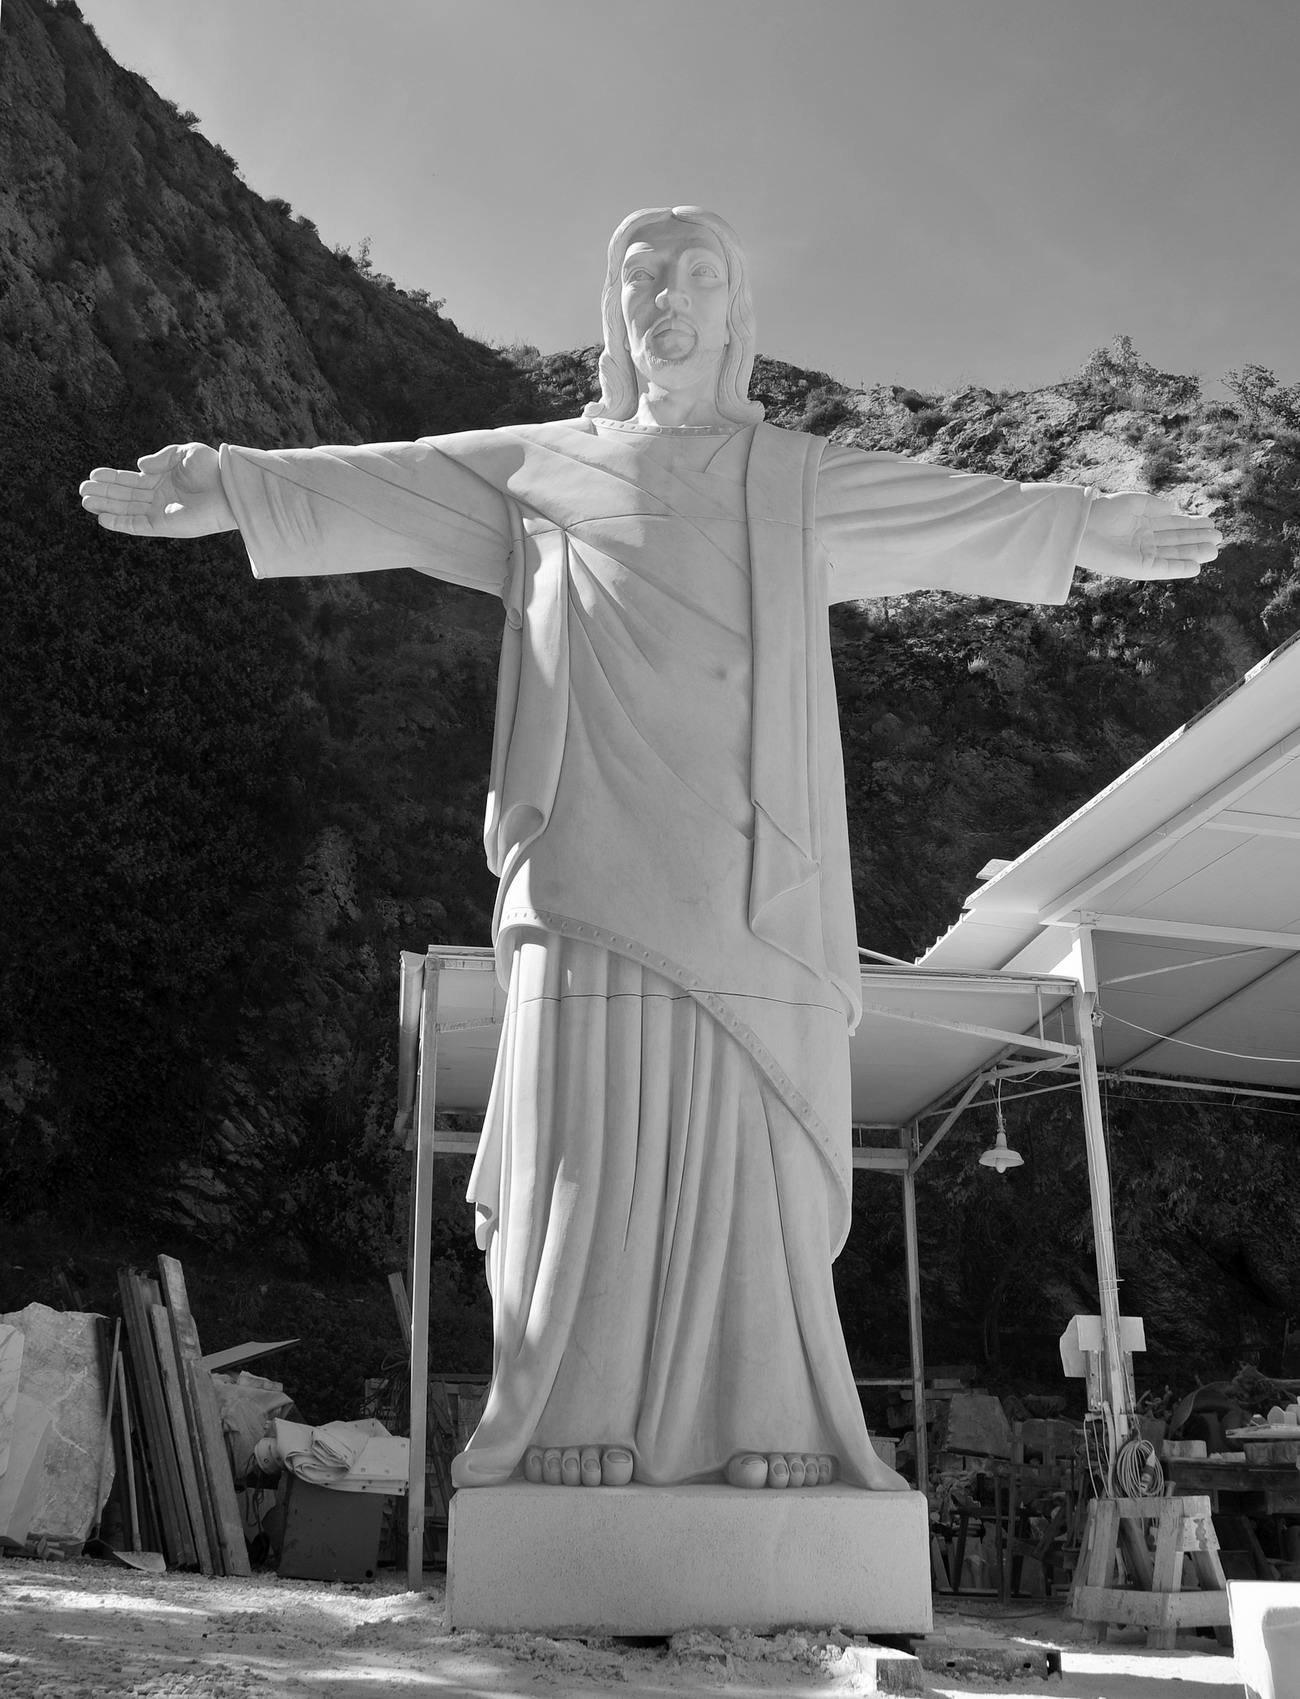 MONFRONI_Cristo_18_ridimensionare